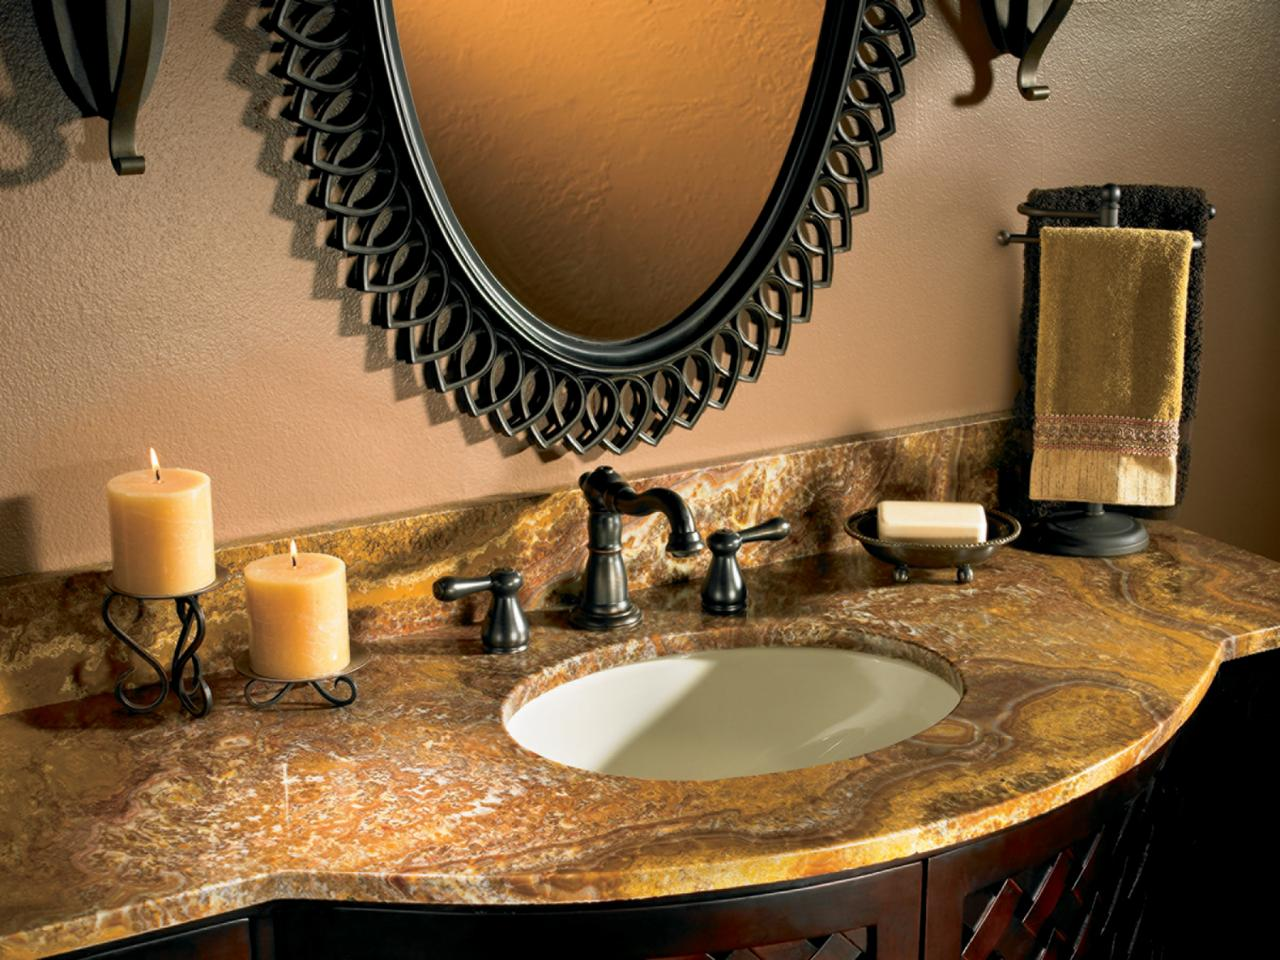 Bathroom Countertop Styles And Trends Bathroom Design Choose Floor Plan Bath Remodeling